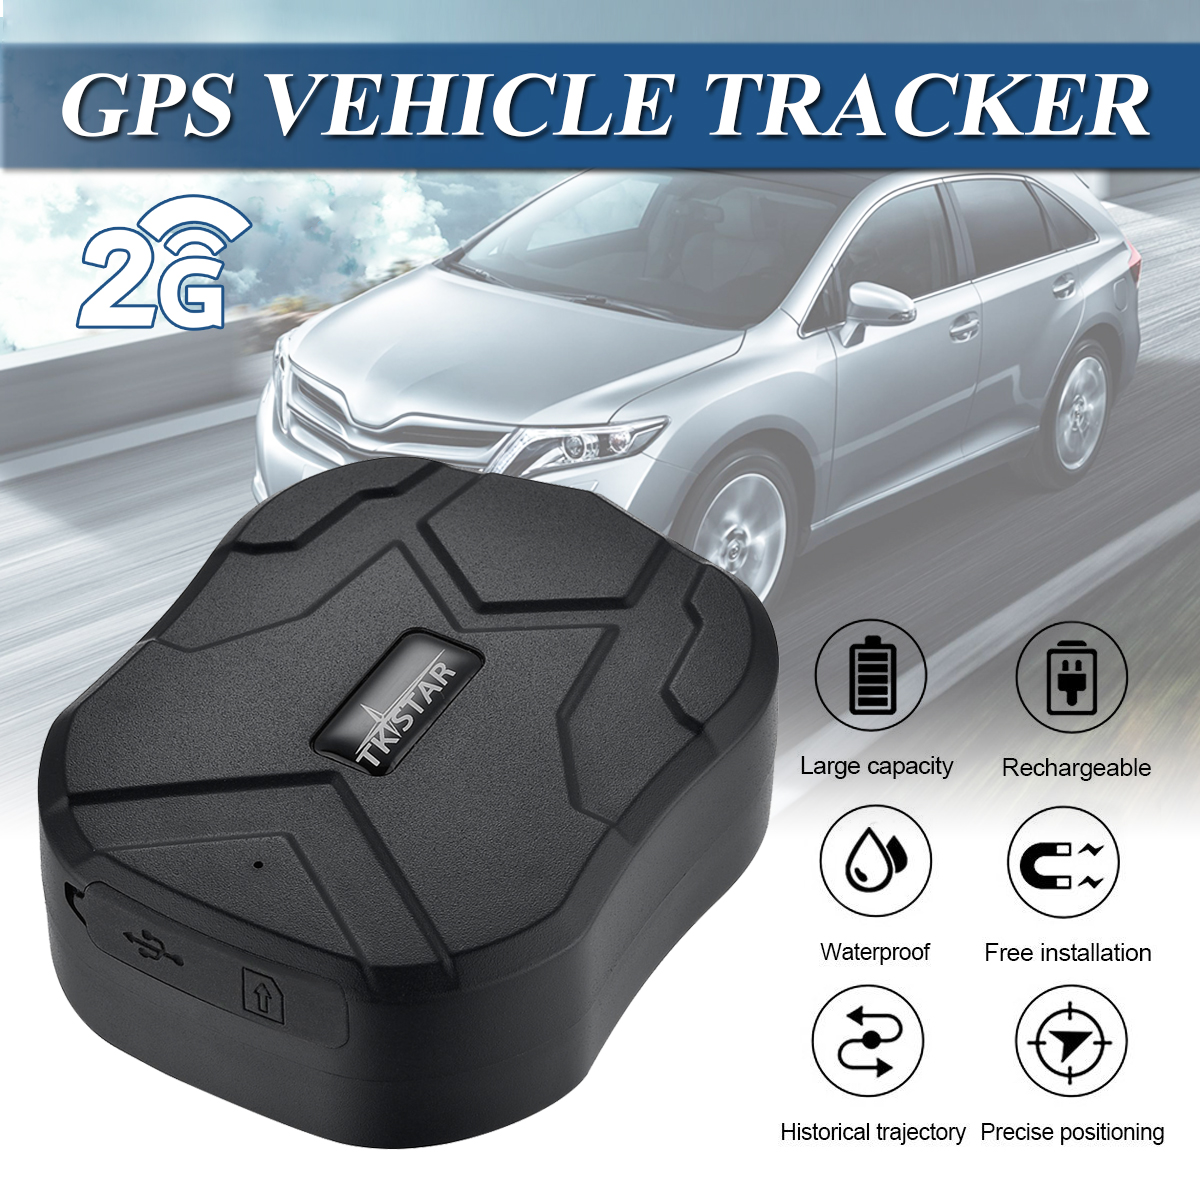 1Pcs Car Gps tracker 5000mAh Battery Standby 270days Vehicle Tracking Device GSM / GPS Dual Locator Waterproof Magnet tracker car gps tracker vehicle tracking device gsm locator 5000mah battery standby 60 days waterproof magnet free web app monitor